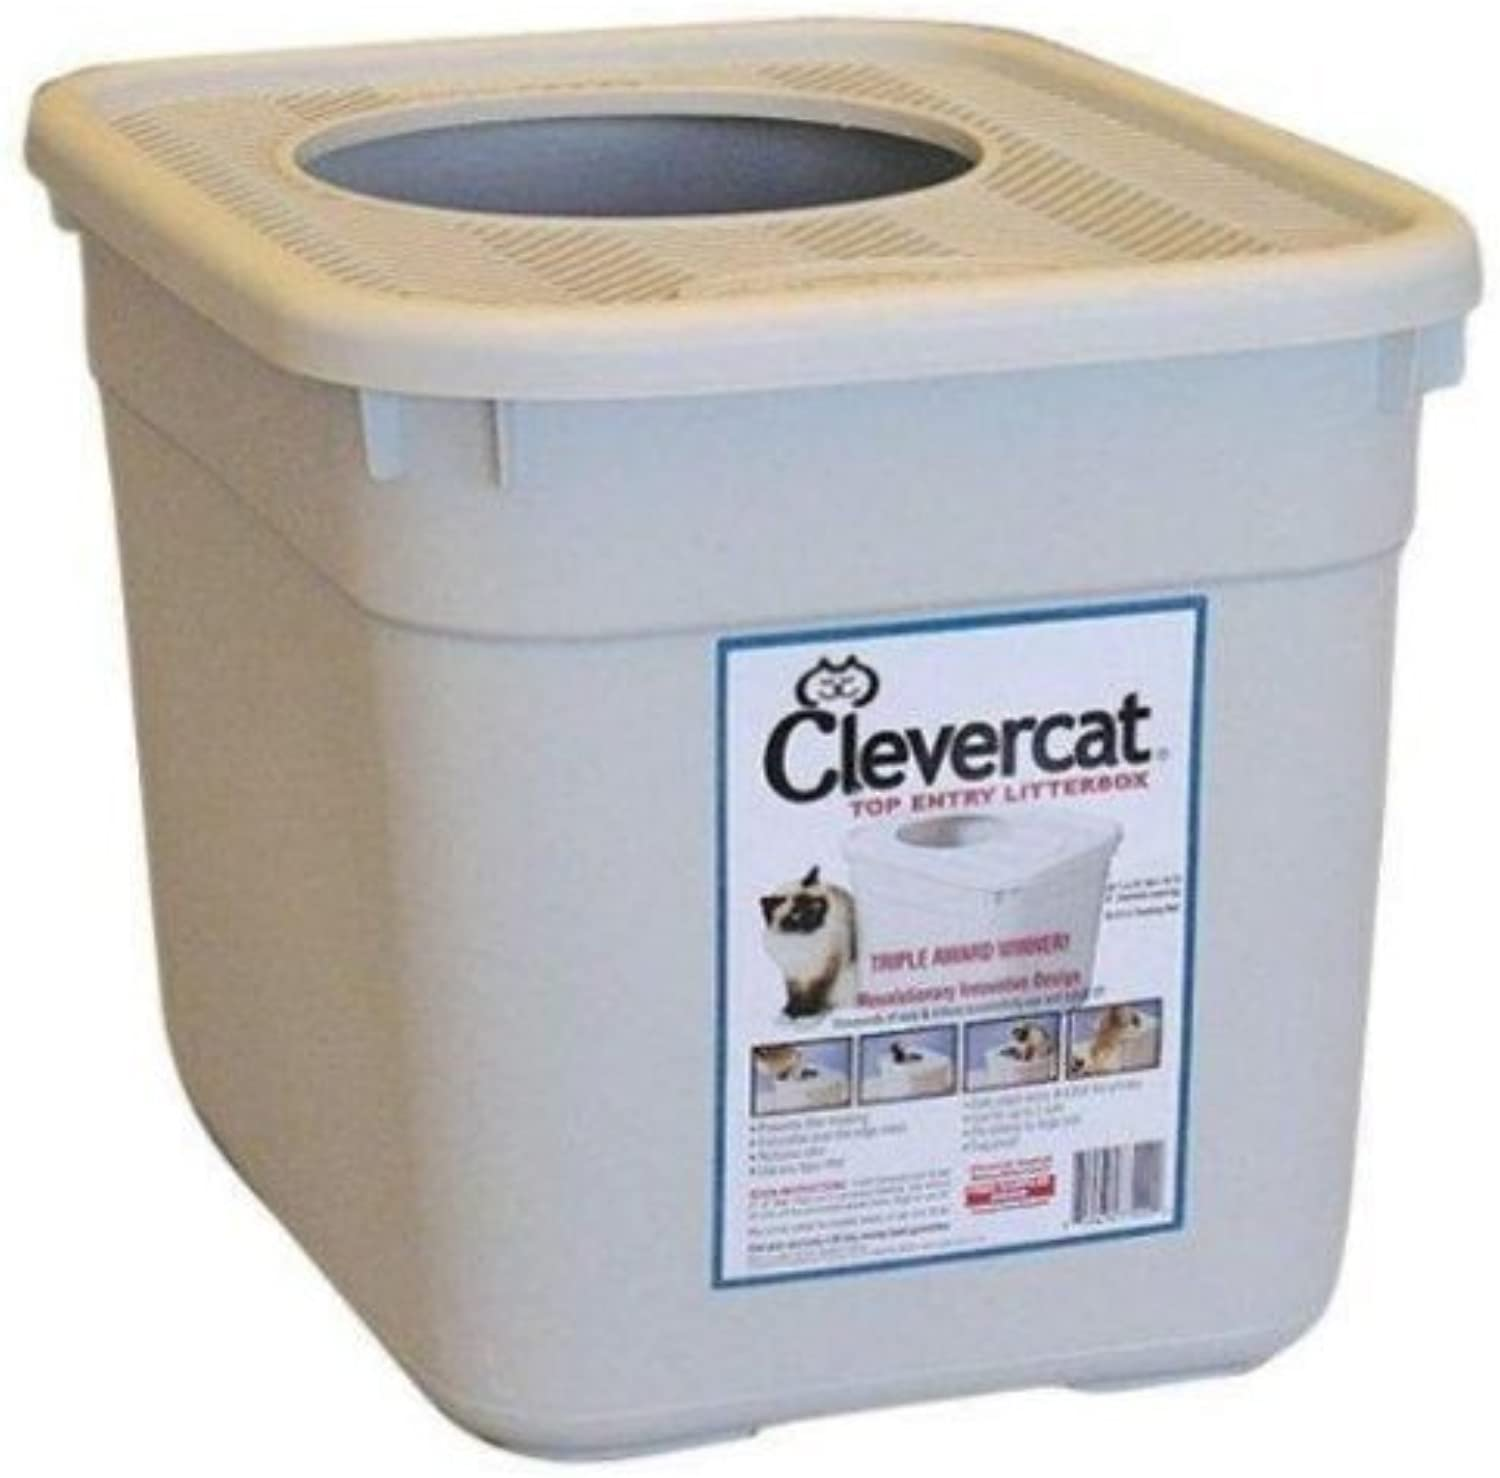 Clevercat Top Entry Litterbox by Monster Pets